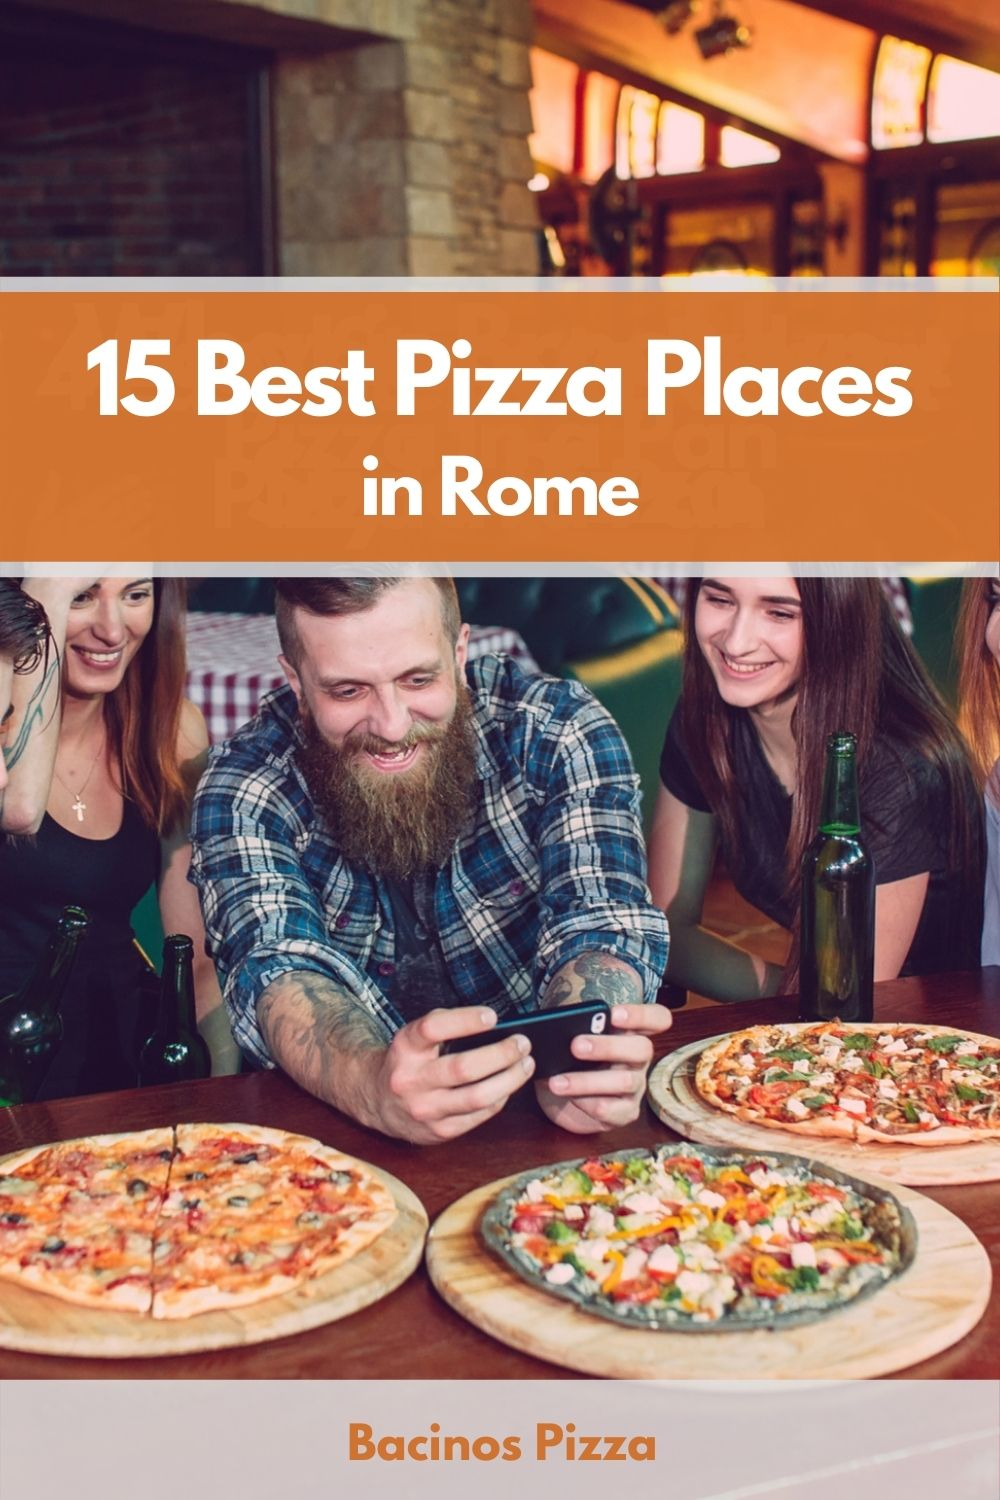 15 Best Pizza Places in Rome pin 2